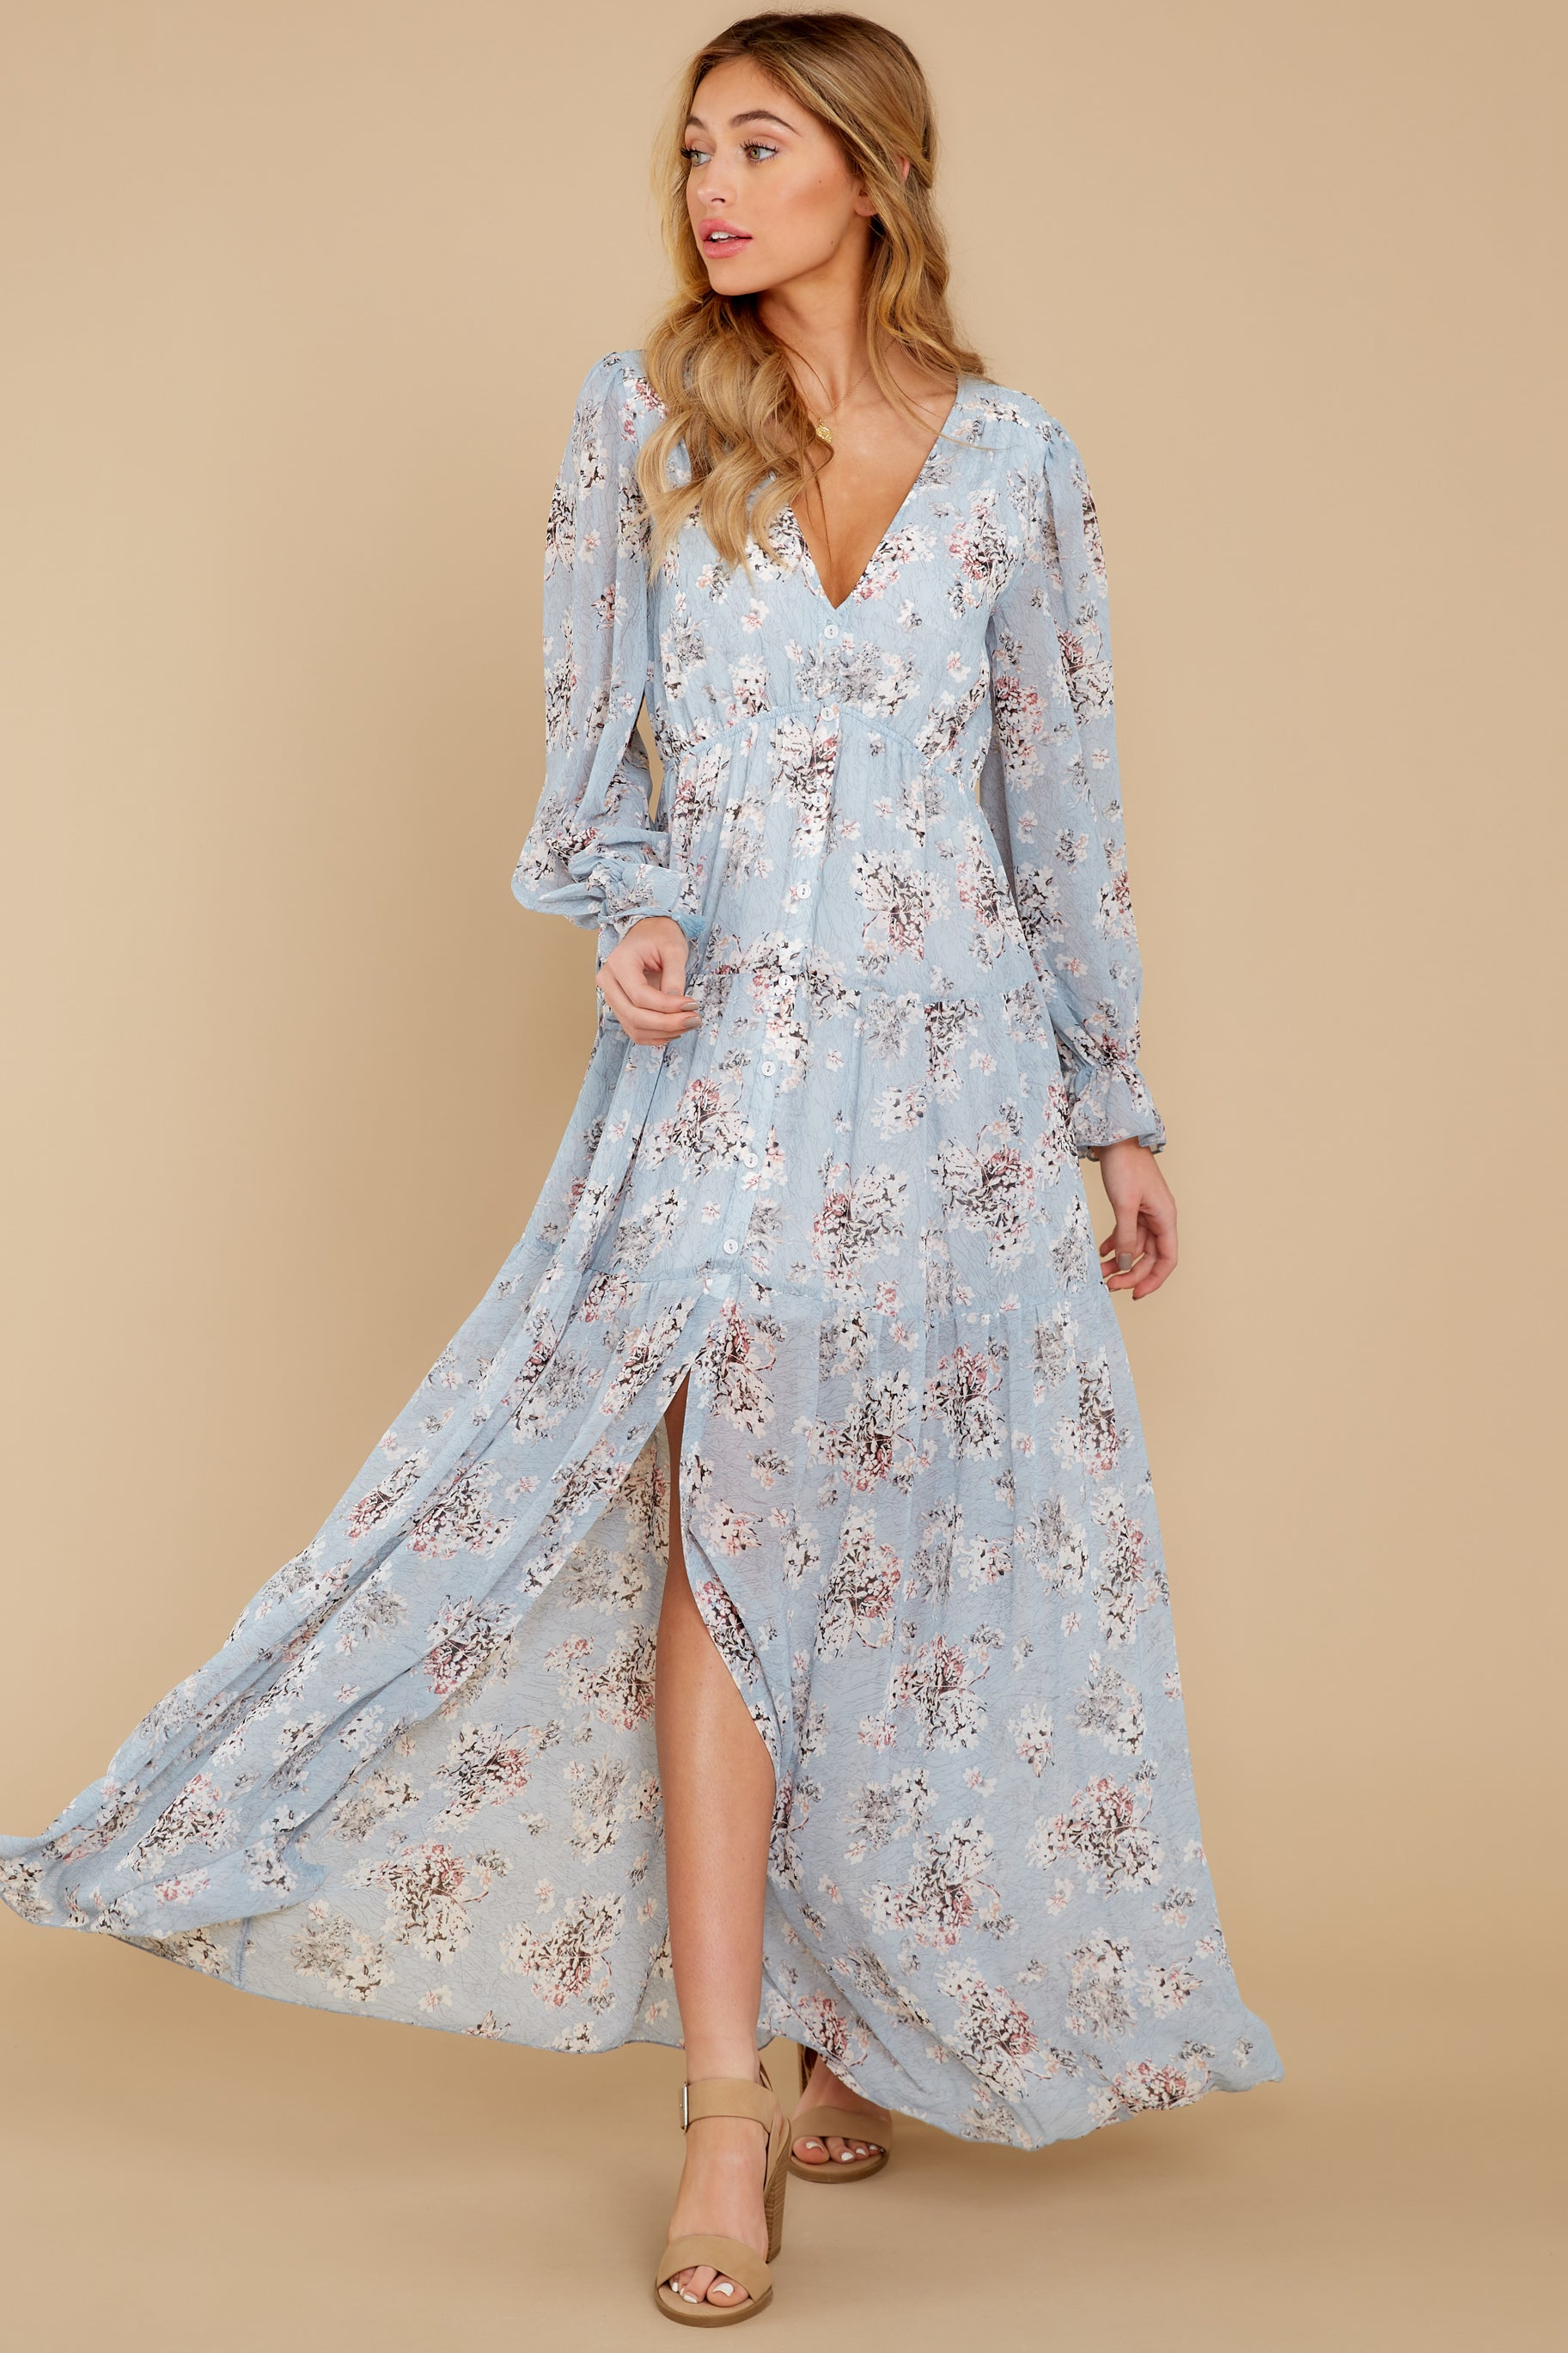 5 Love In Bloom Light Blue Floral Print Maxi Dress at reddress.com